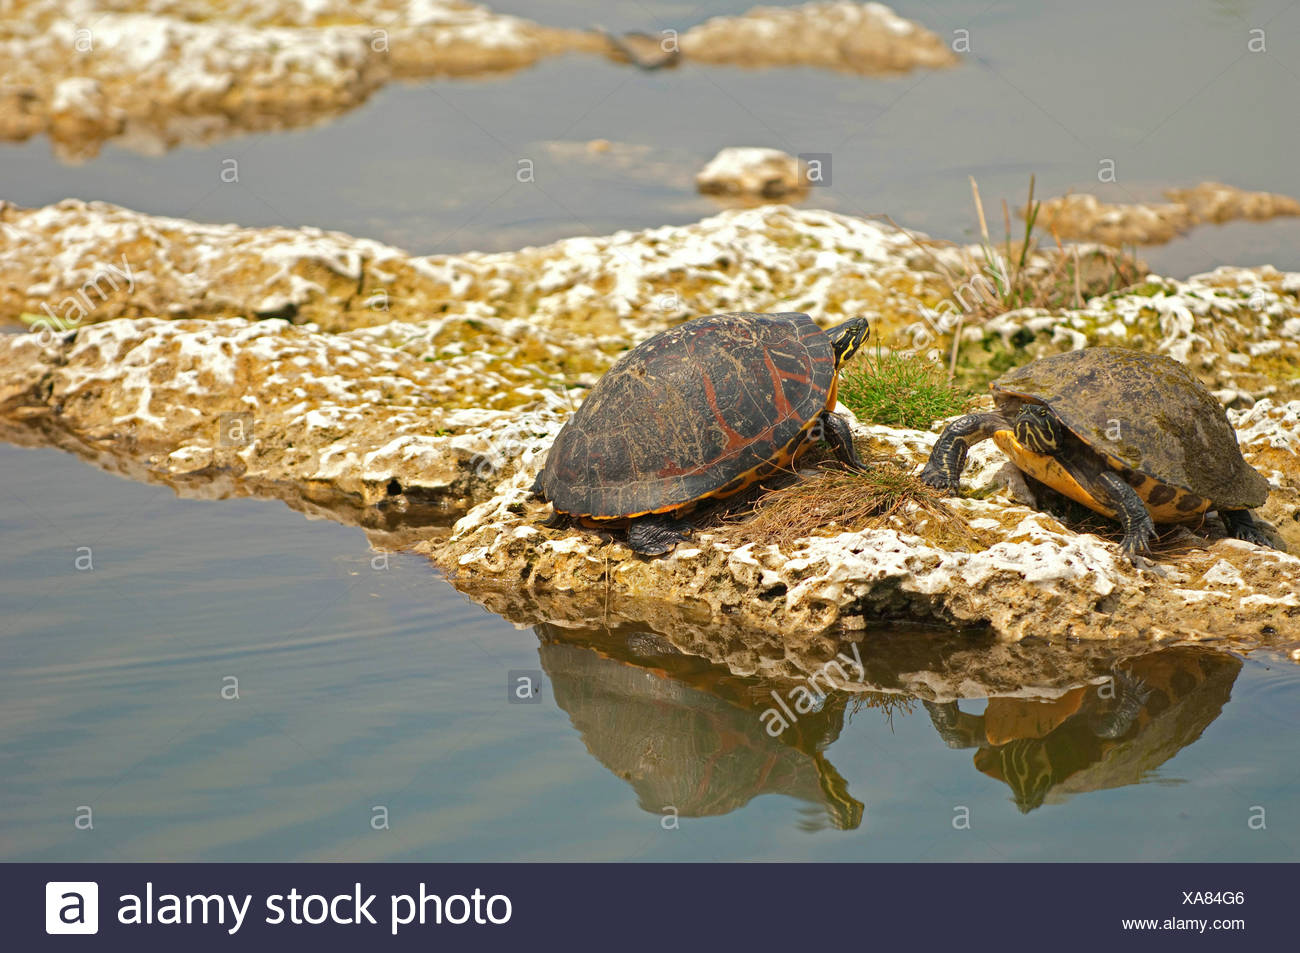 red-bellied turtle, redbelly turtle (Chrysemys rubriventris), turtles taking a sunbath, USA, Florida, Everglades National Park Stock Photo